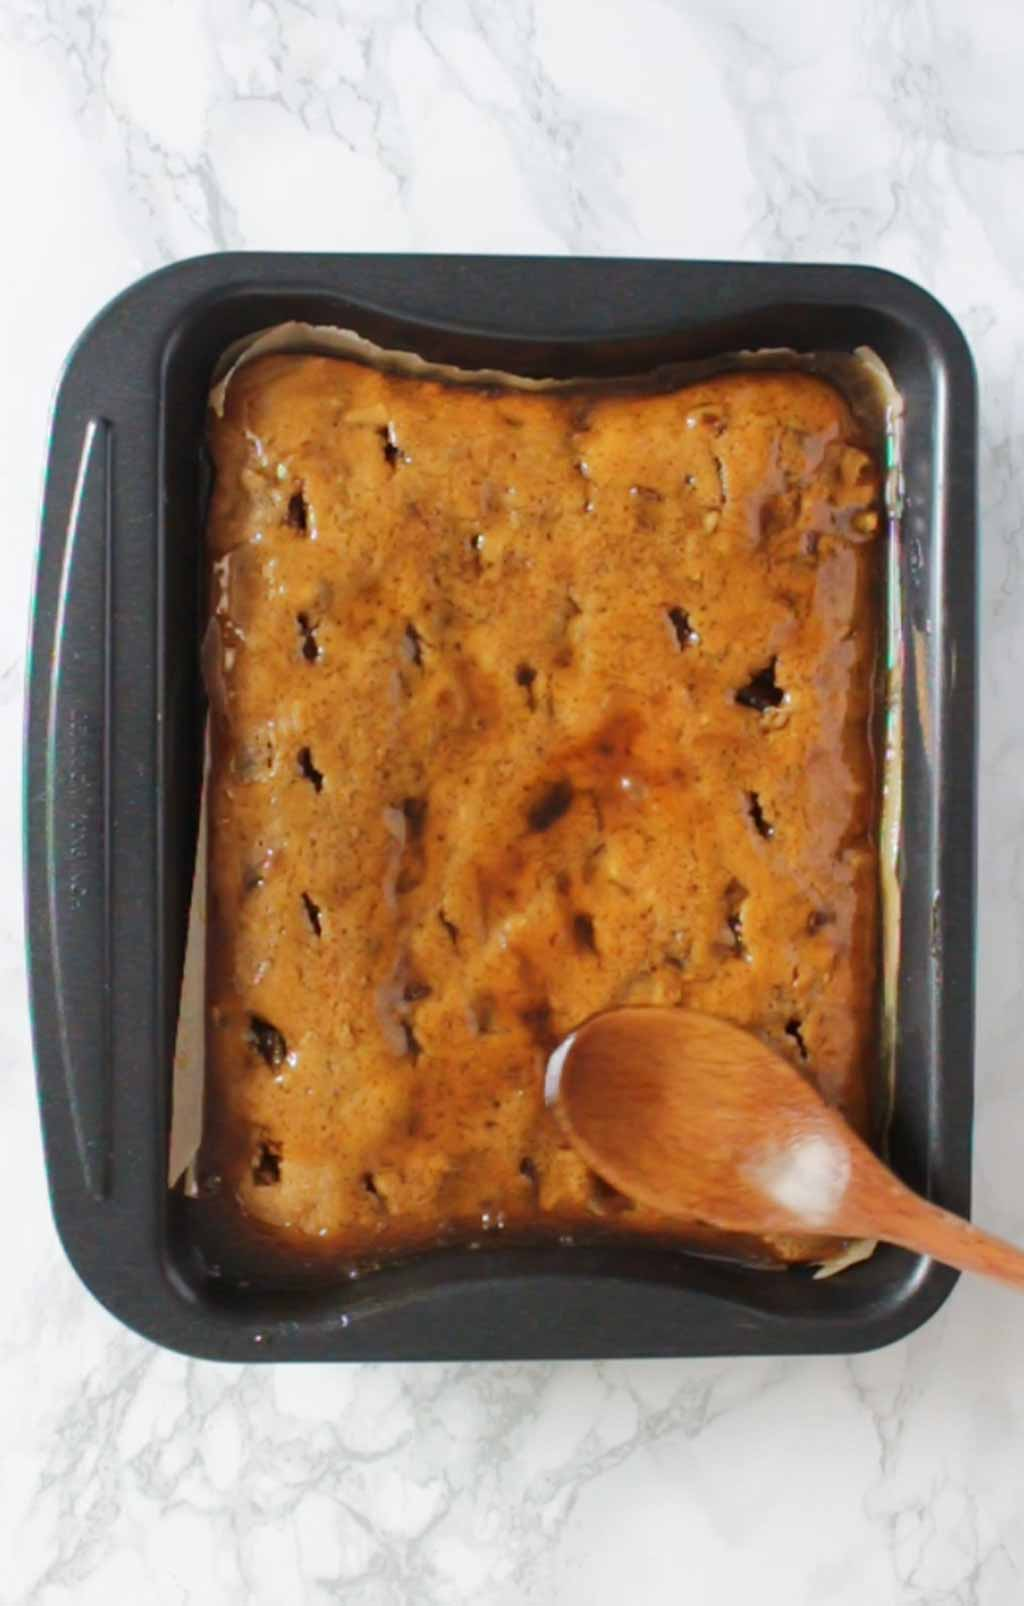 Spreading Toffee Sauce Over Pudding